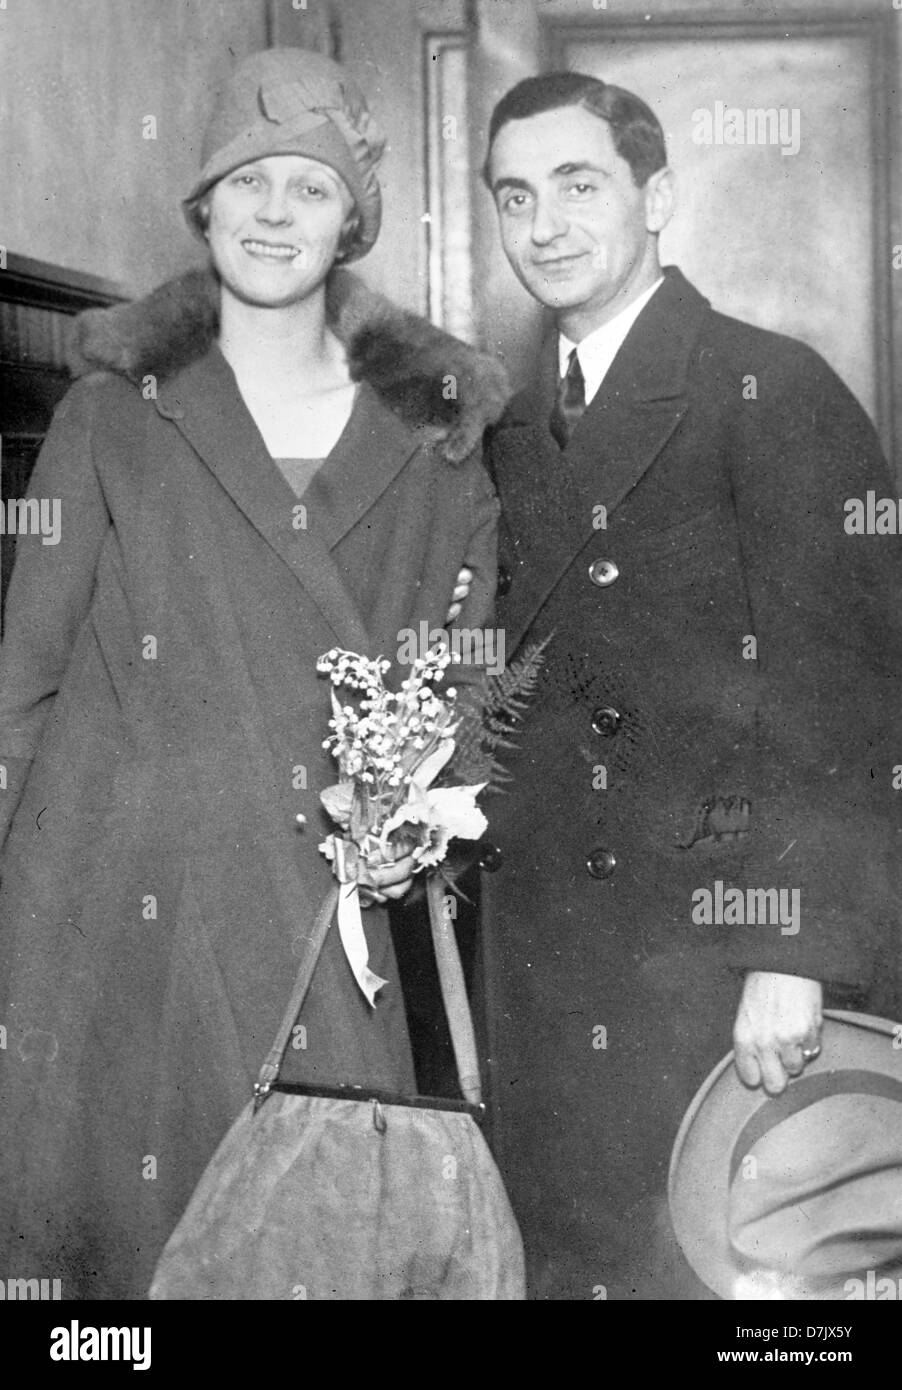 Irving Berlin and wife, American composer, lyricist and songwriter - Stock Image